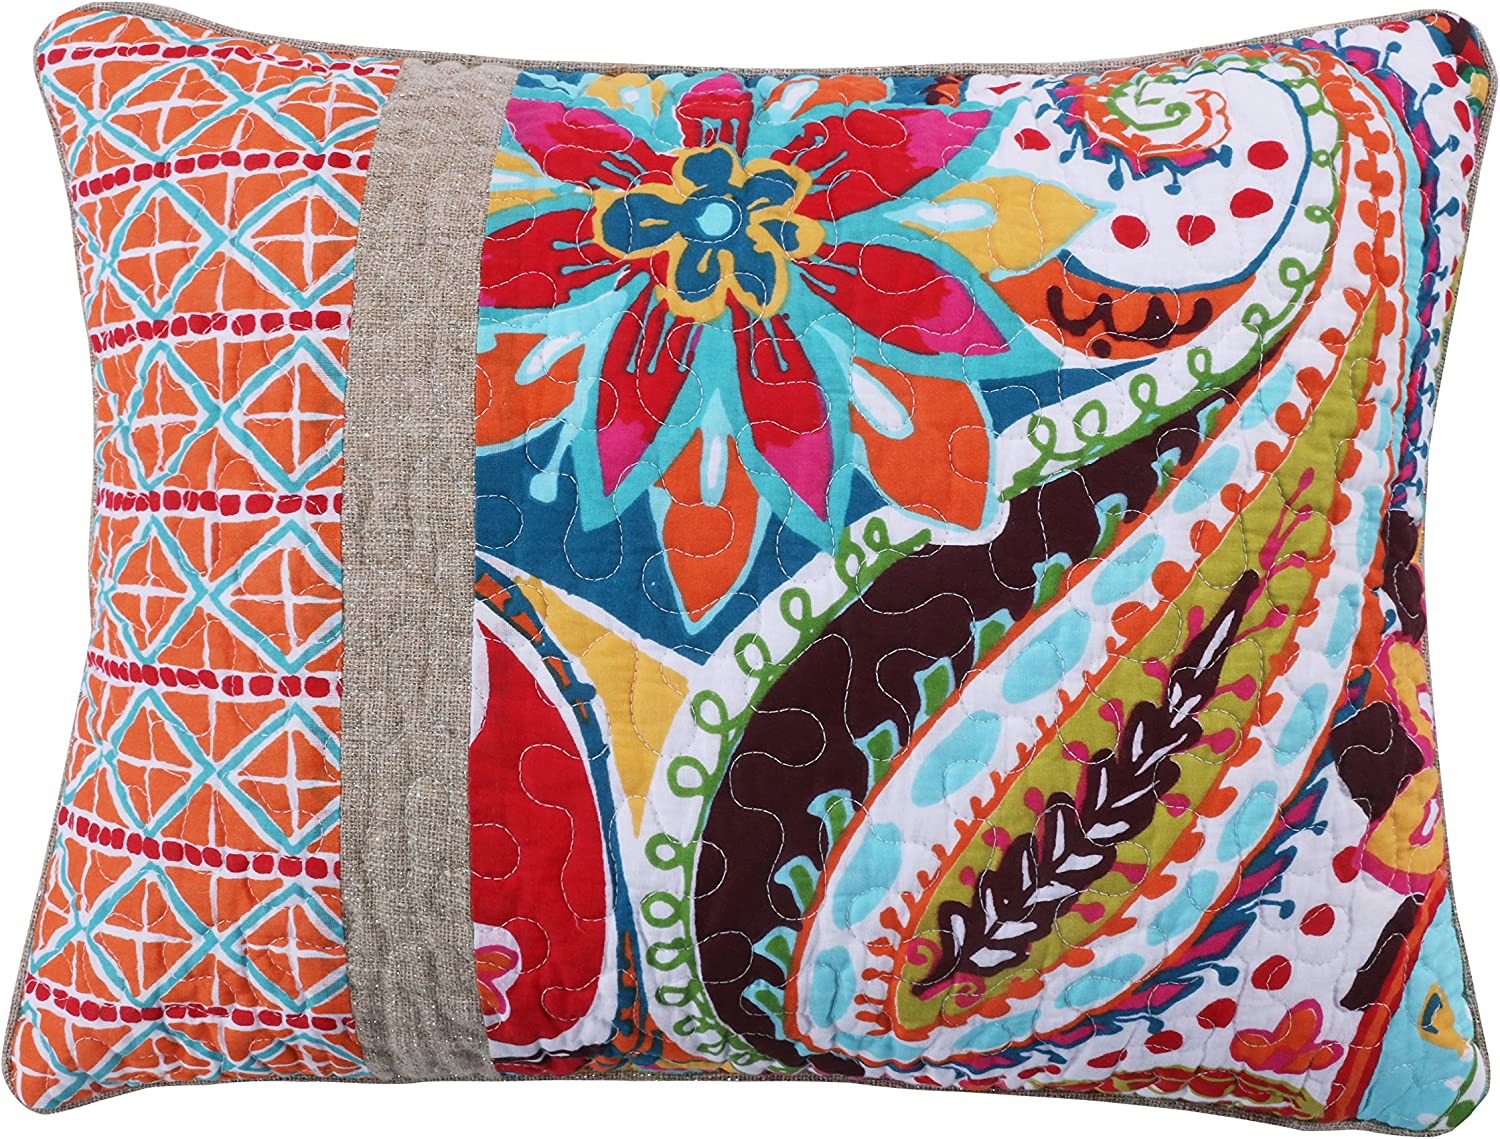 Levtex Home - Rhapsody - Pieced Quilted Pillow (14 X 18in.) - Multi Paisley - Yellow, Orange, Red, Green and Blues - Feather Filled